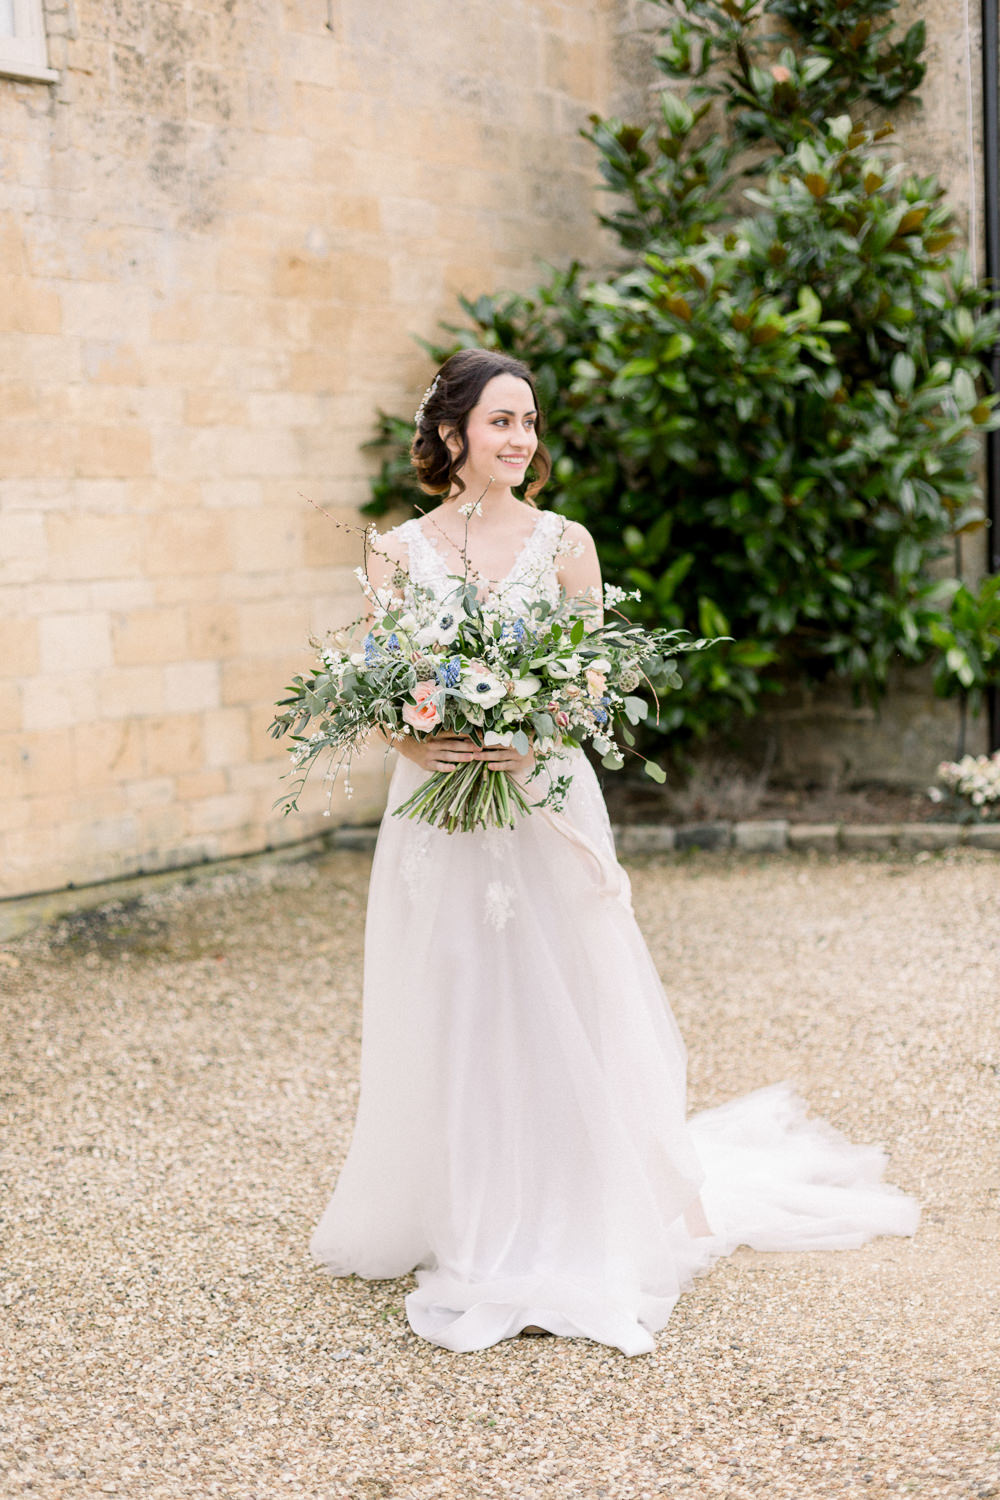 Dress Gown Bride Bridal Winter Blue Barn Wedding Ideas Joanna Briggs Photography